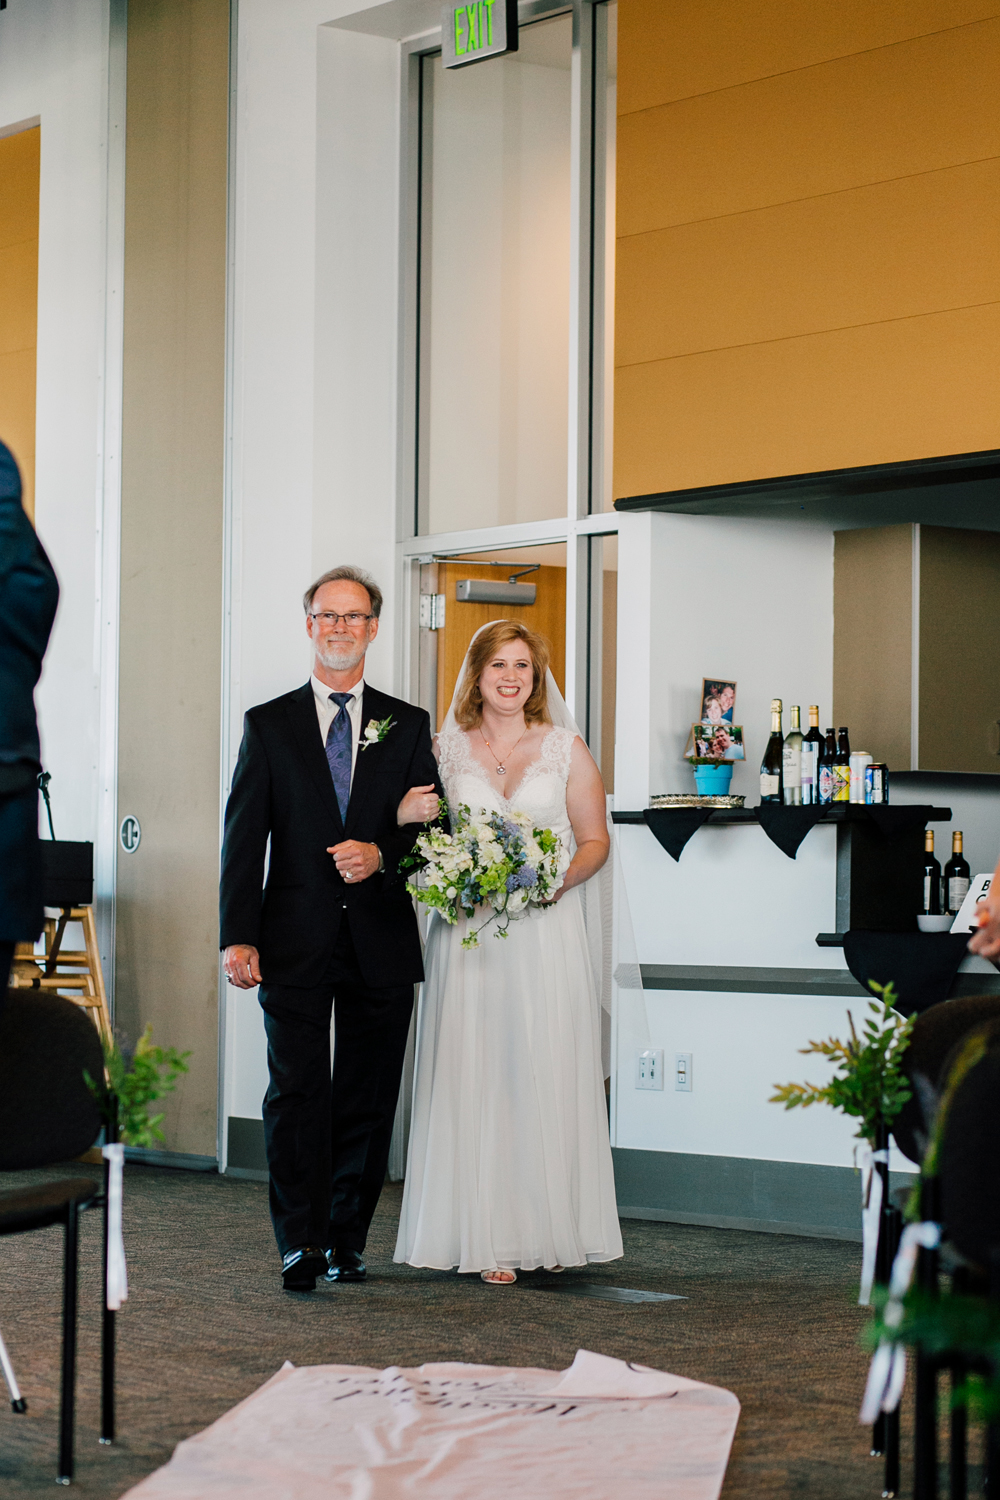 052-seattle-wedding-photographer-katheryn-moran-pacific-tower-elyse-jayson-stemmler.jpg